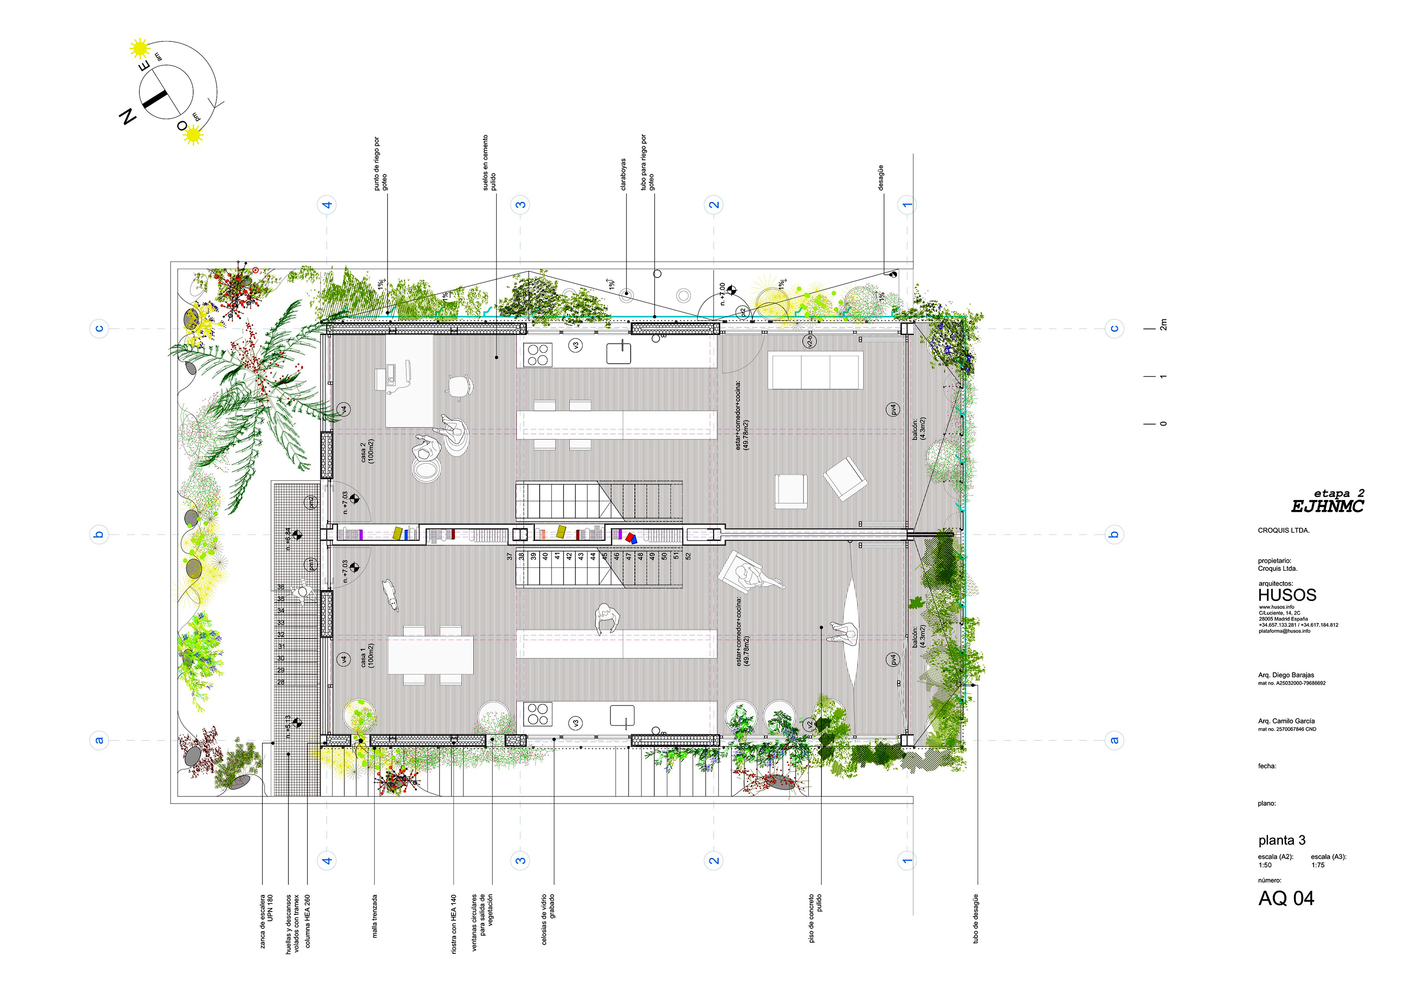 Bioclimatic Prototype Of A Host And Nectar Garden Building,Third Floor Plan